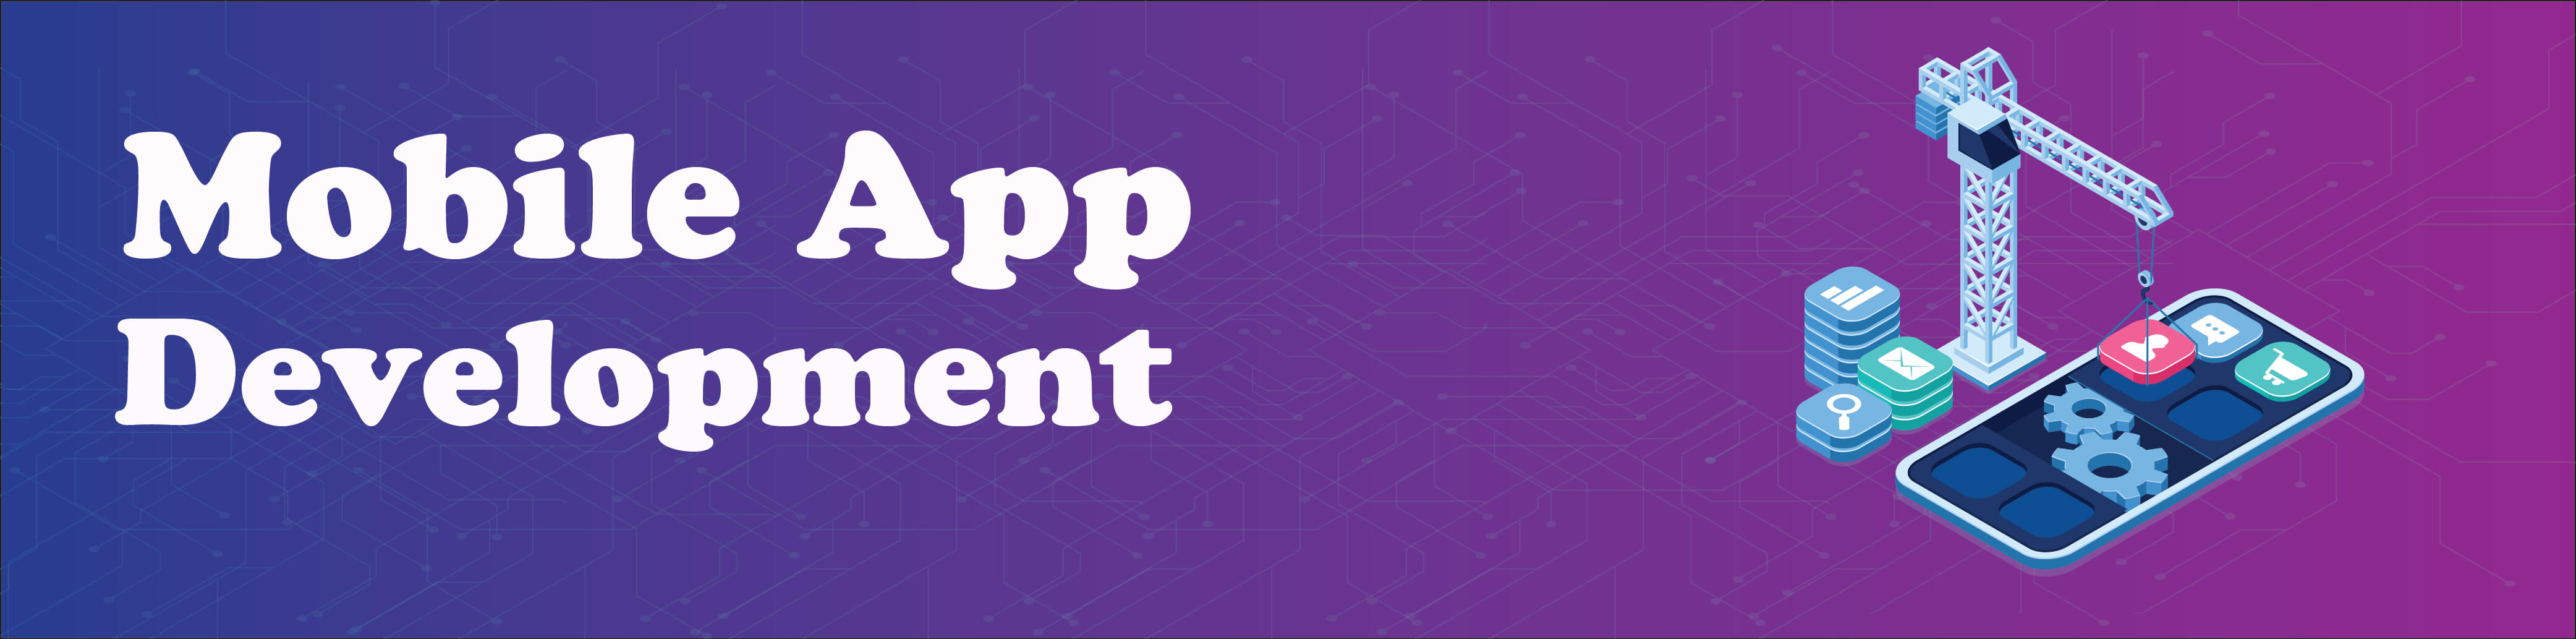 mobile app development courses